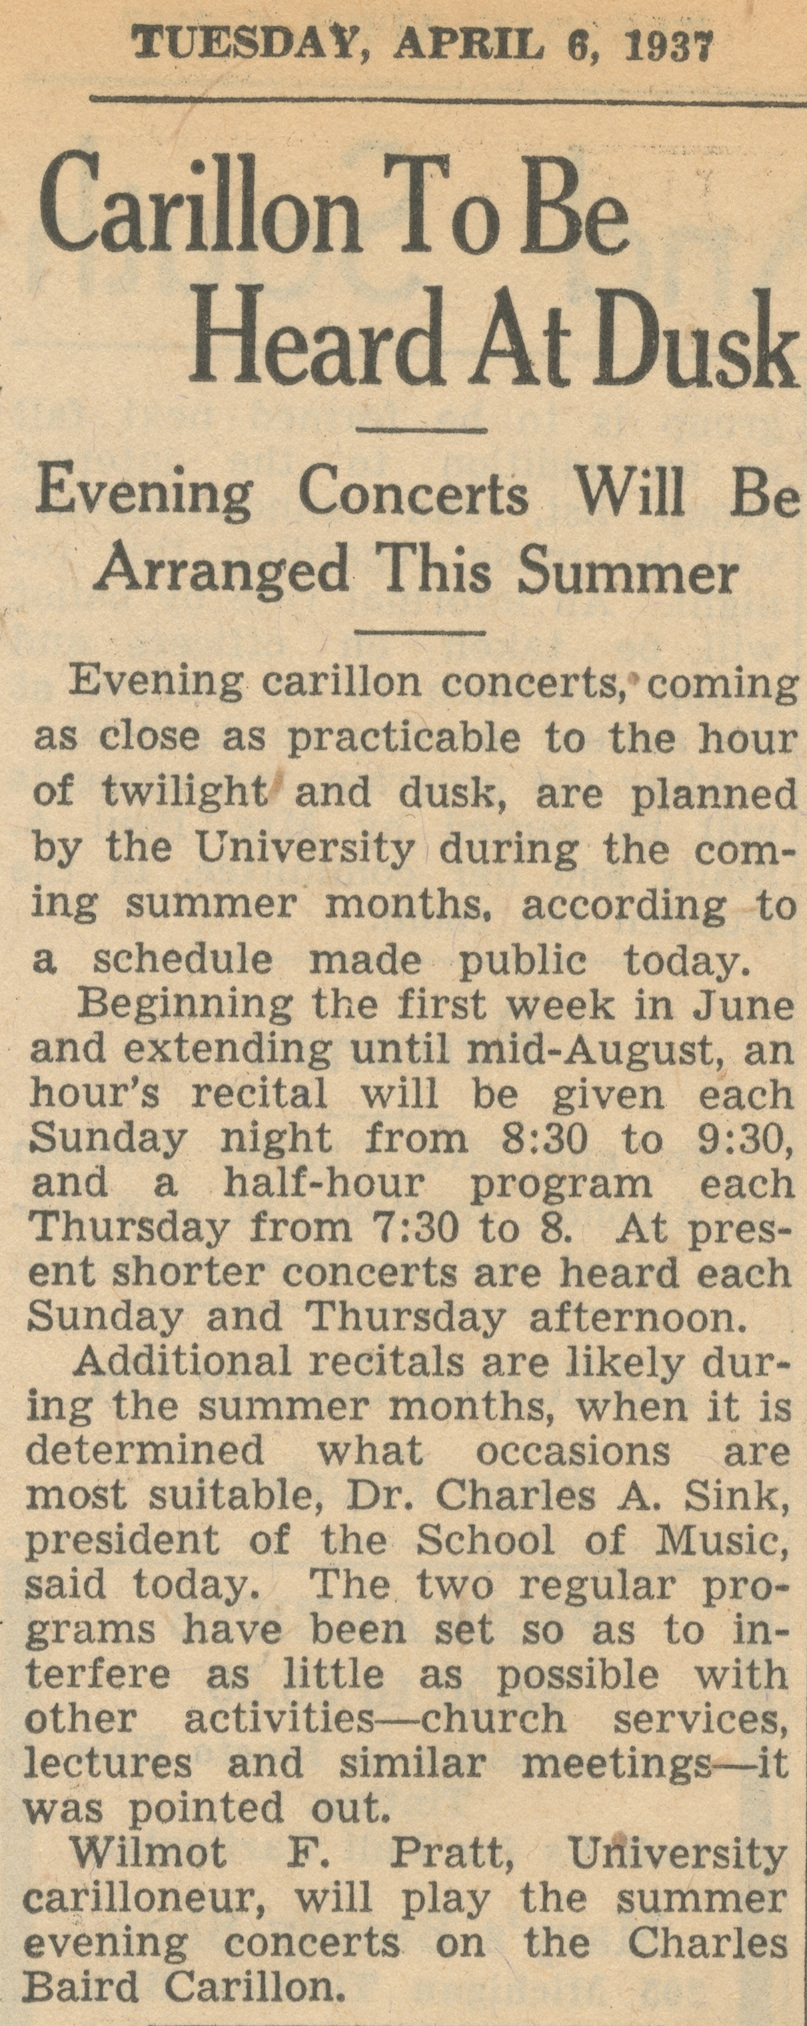 Carillon To Be Heard At Dusk - Evening Concerts Will Be Arranged This Summer image